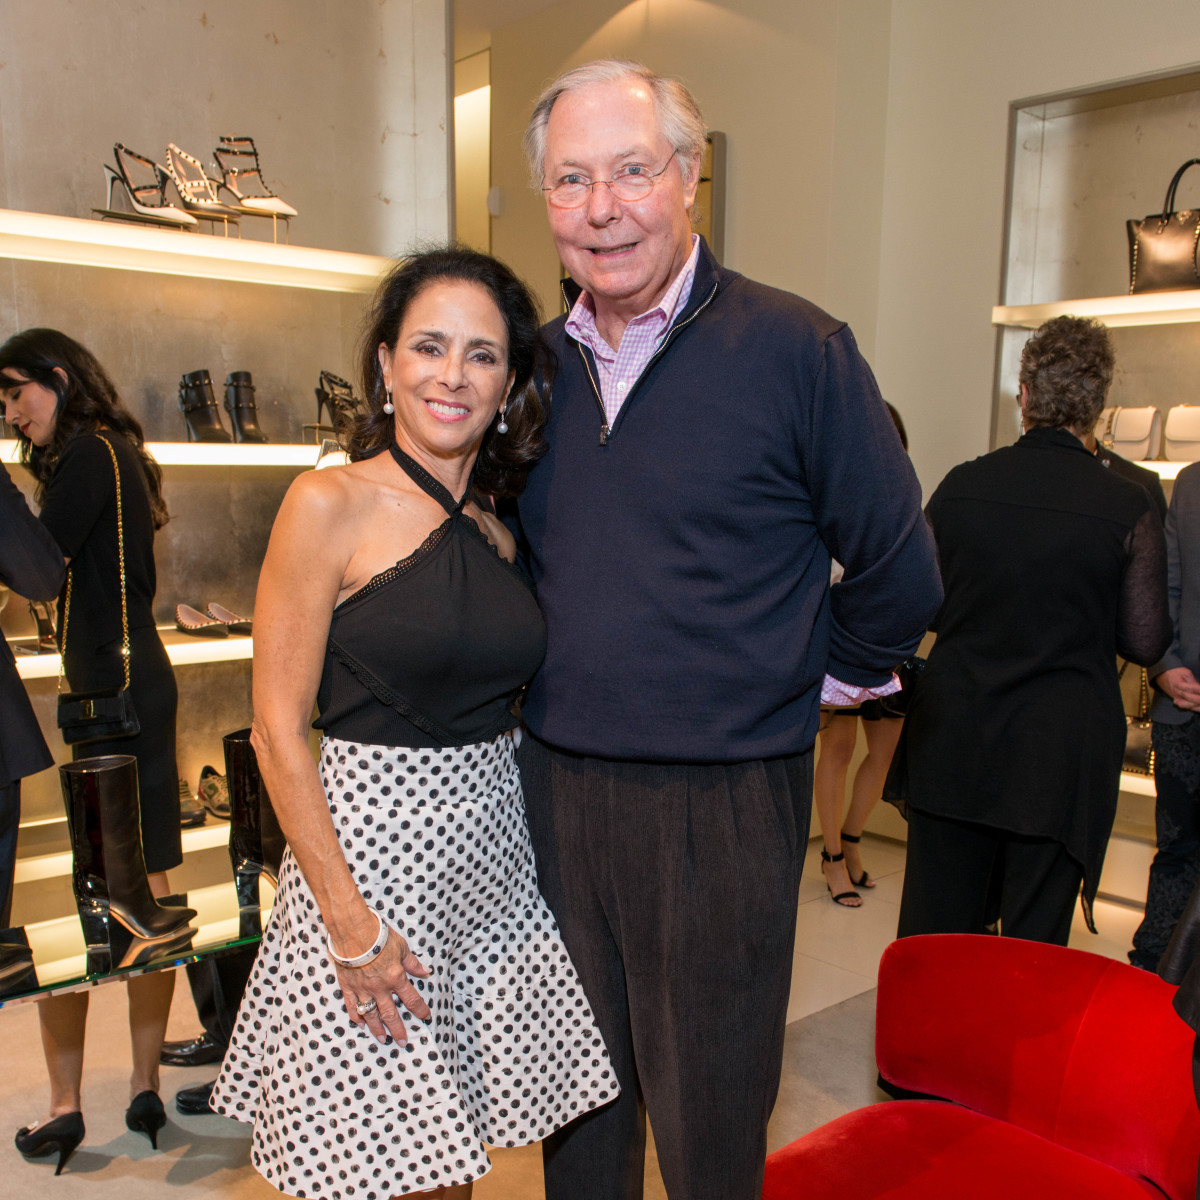 News, Shelby, Heart of Fashion Valentino party, Sept. 2015, Sylvie Crum, Gary Crum